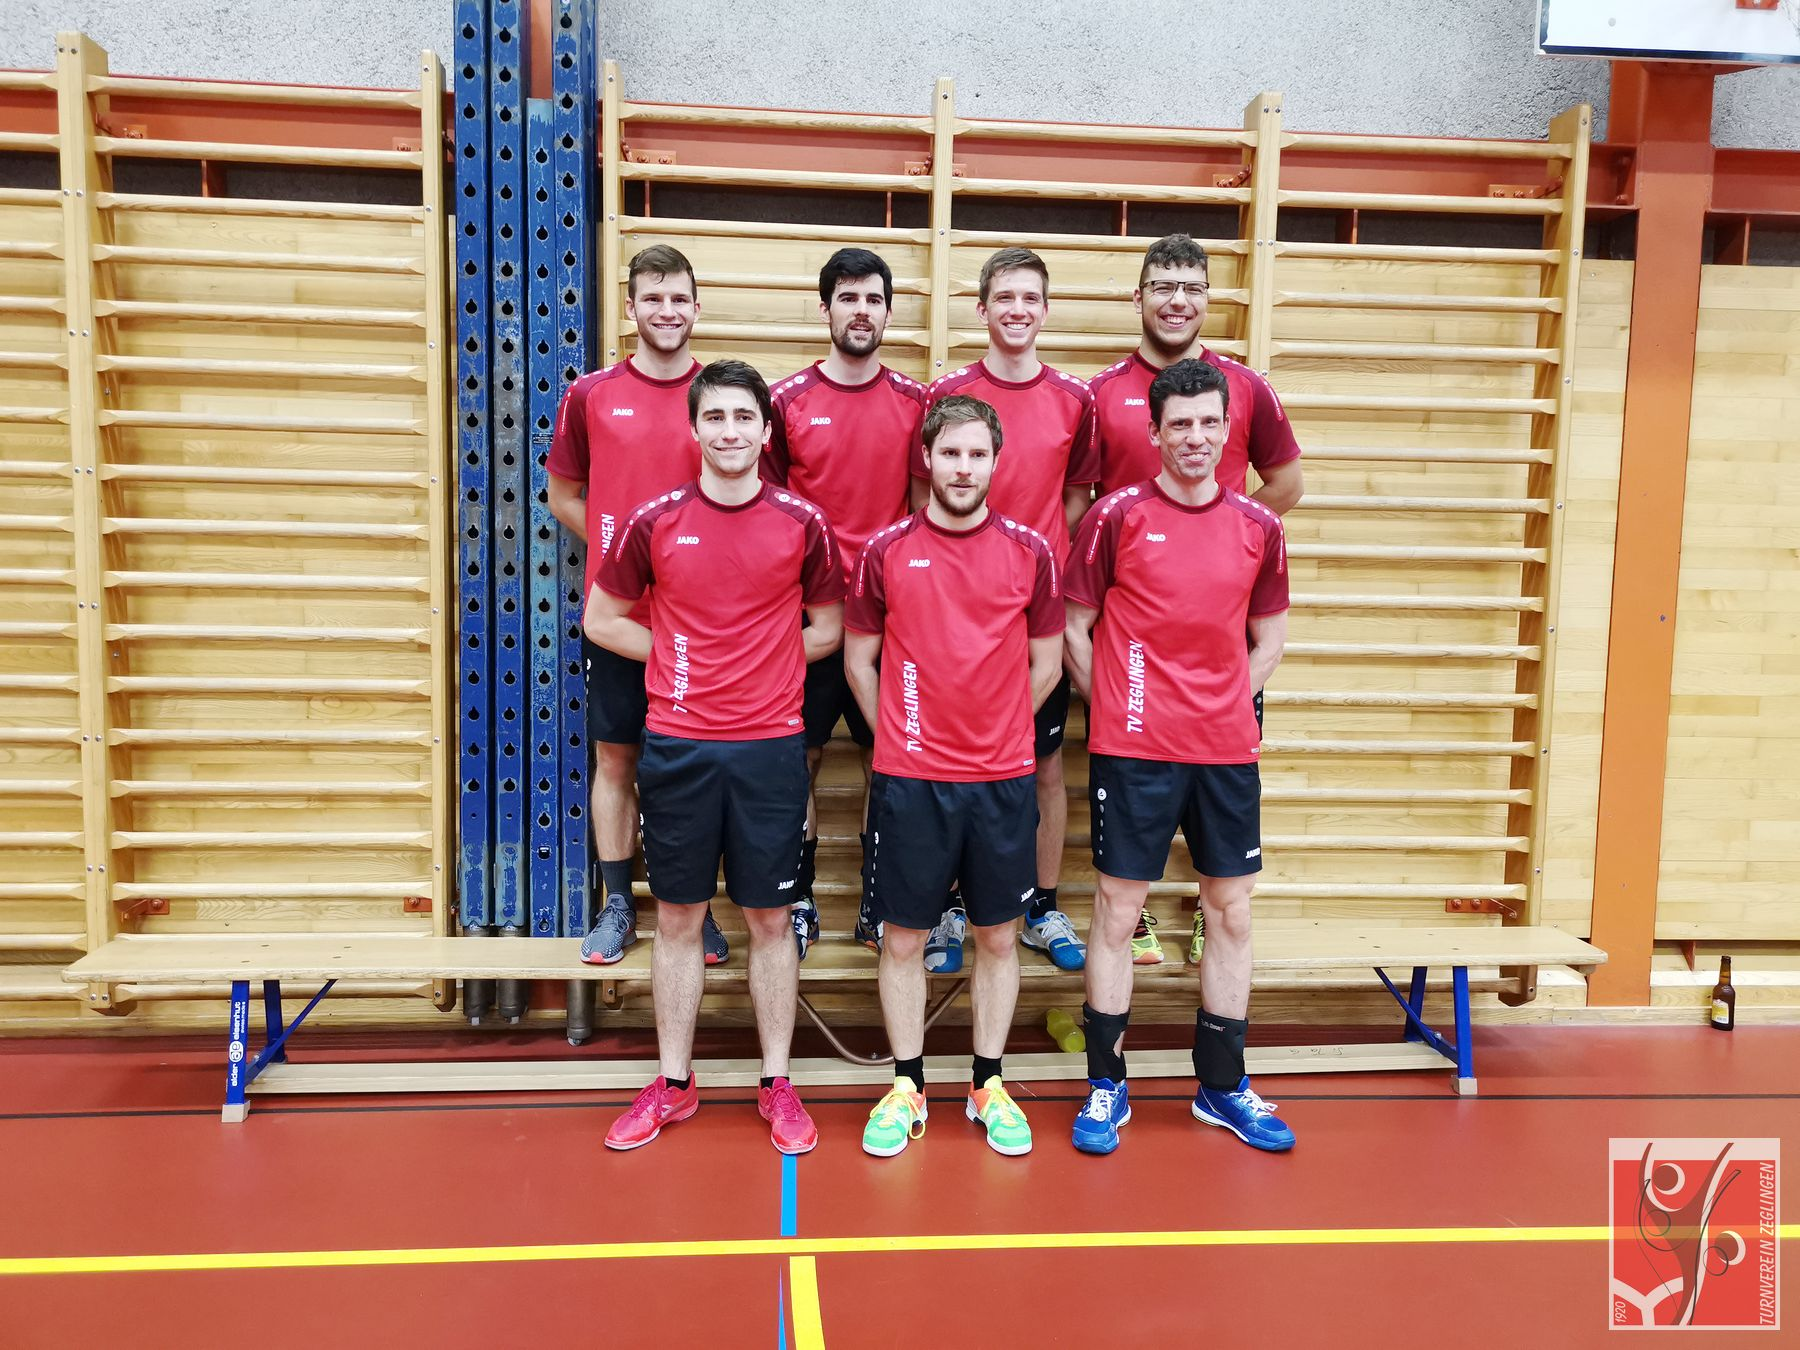 Volleyballturnier 2019 2